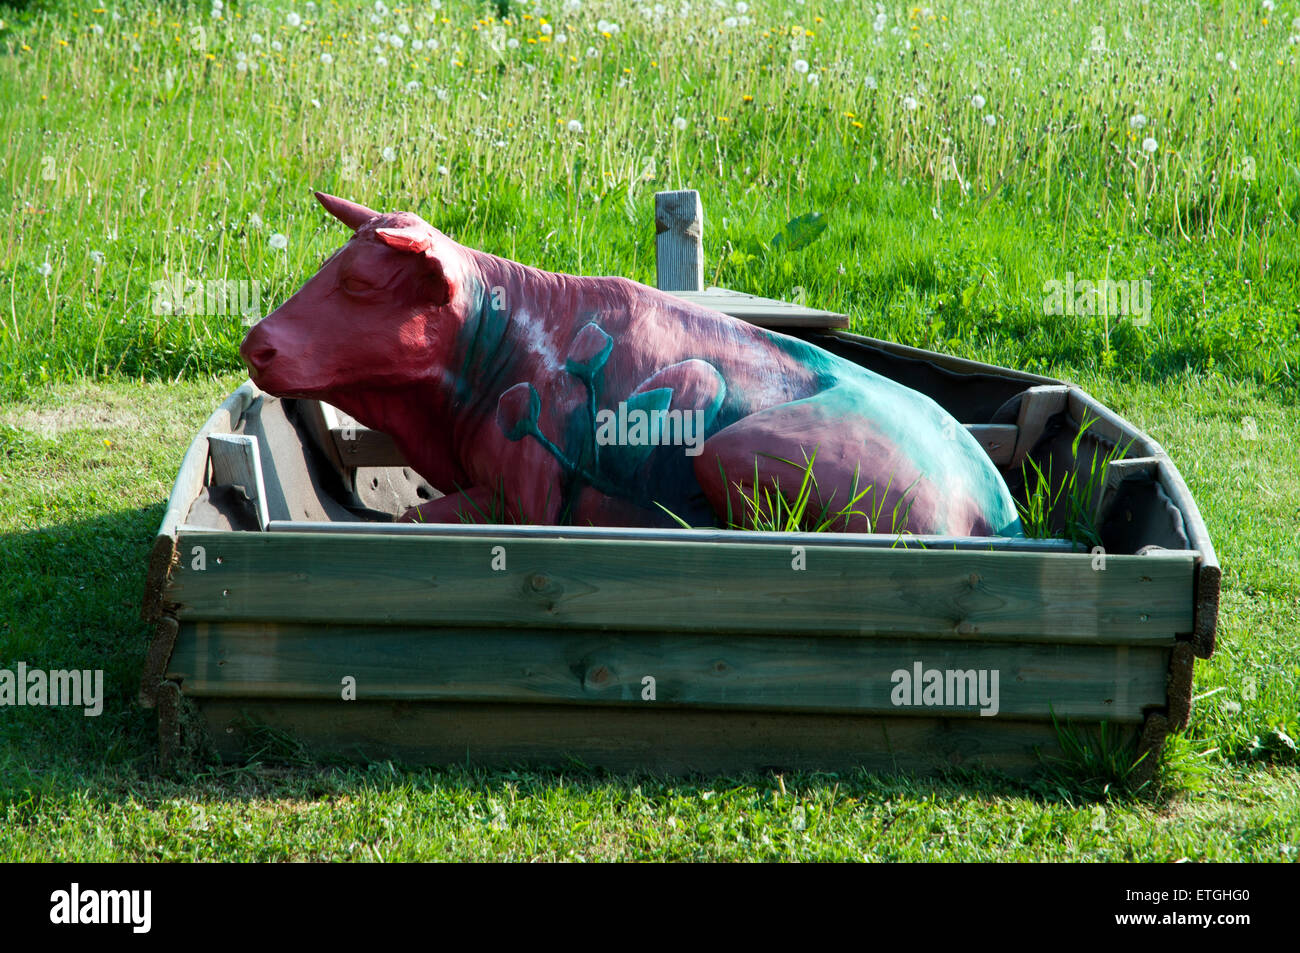 Art project Cow made from papier mache lies in a boat on a meadow - Stock Image